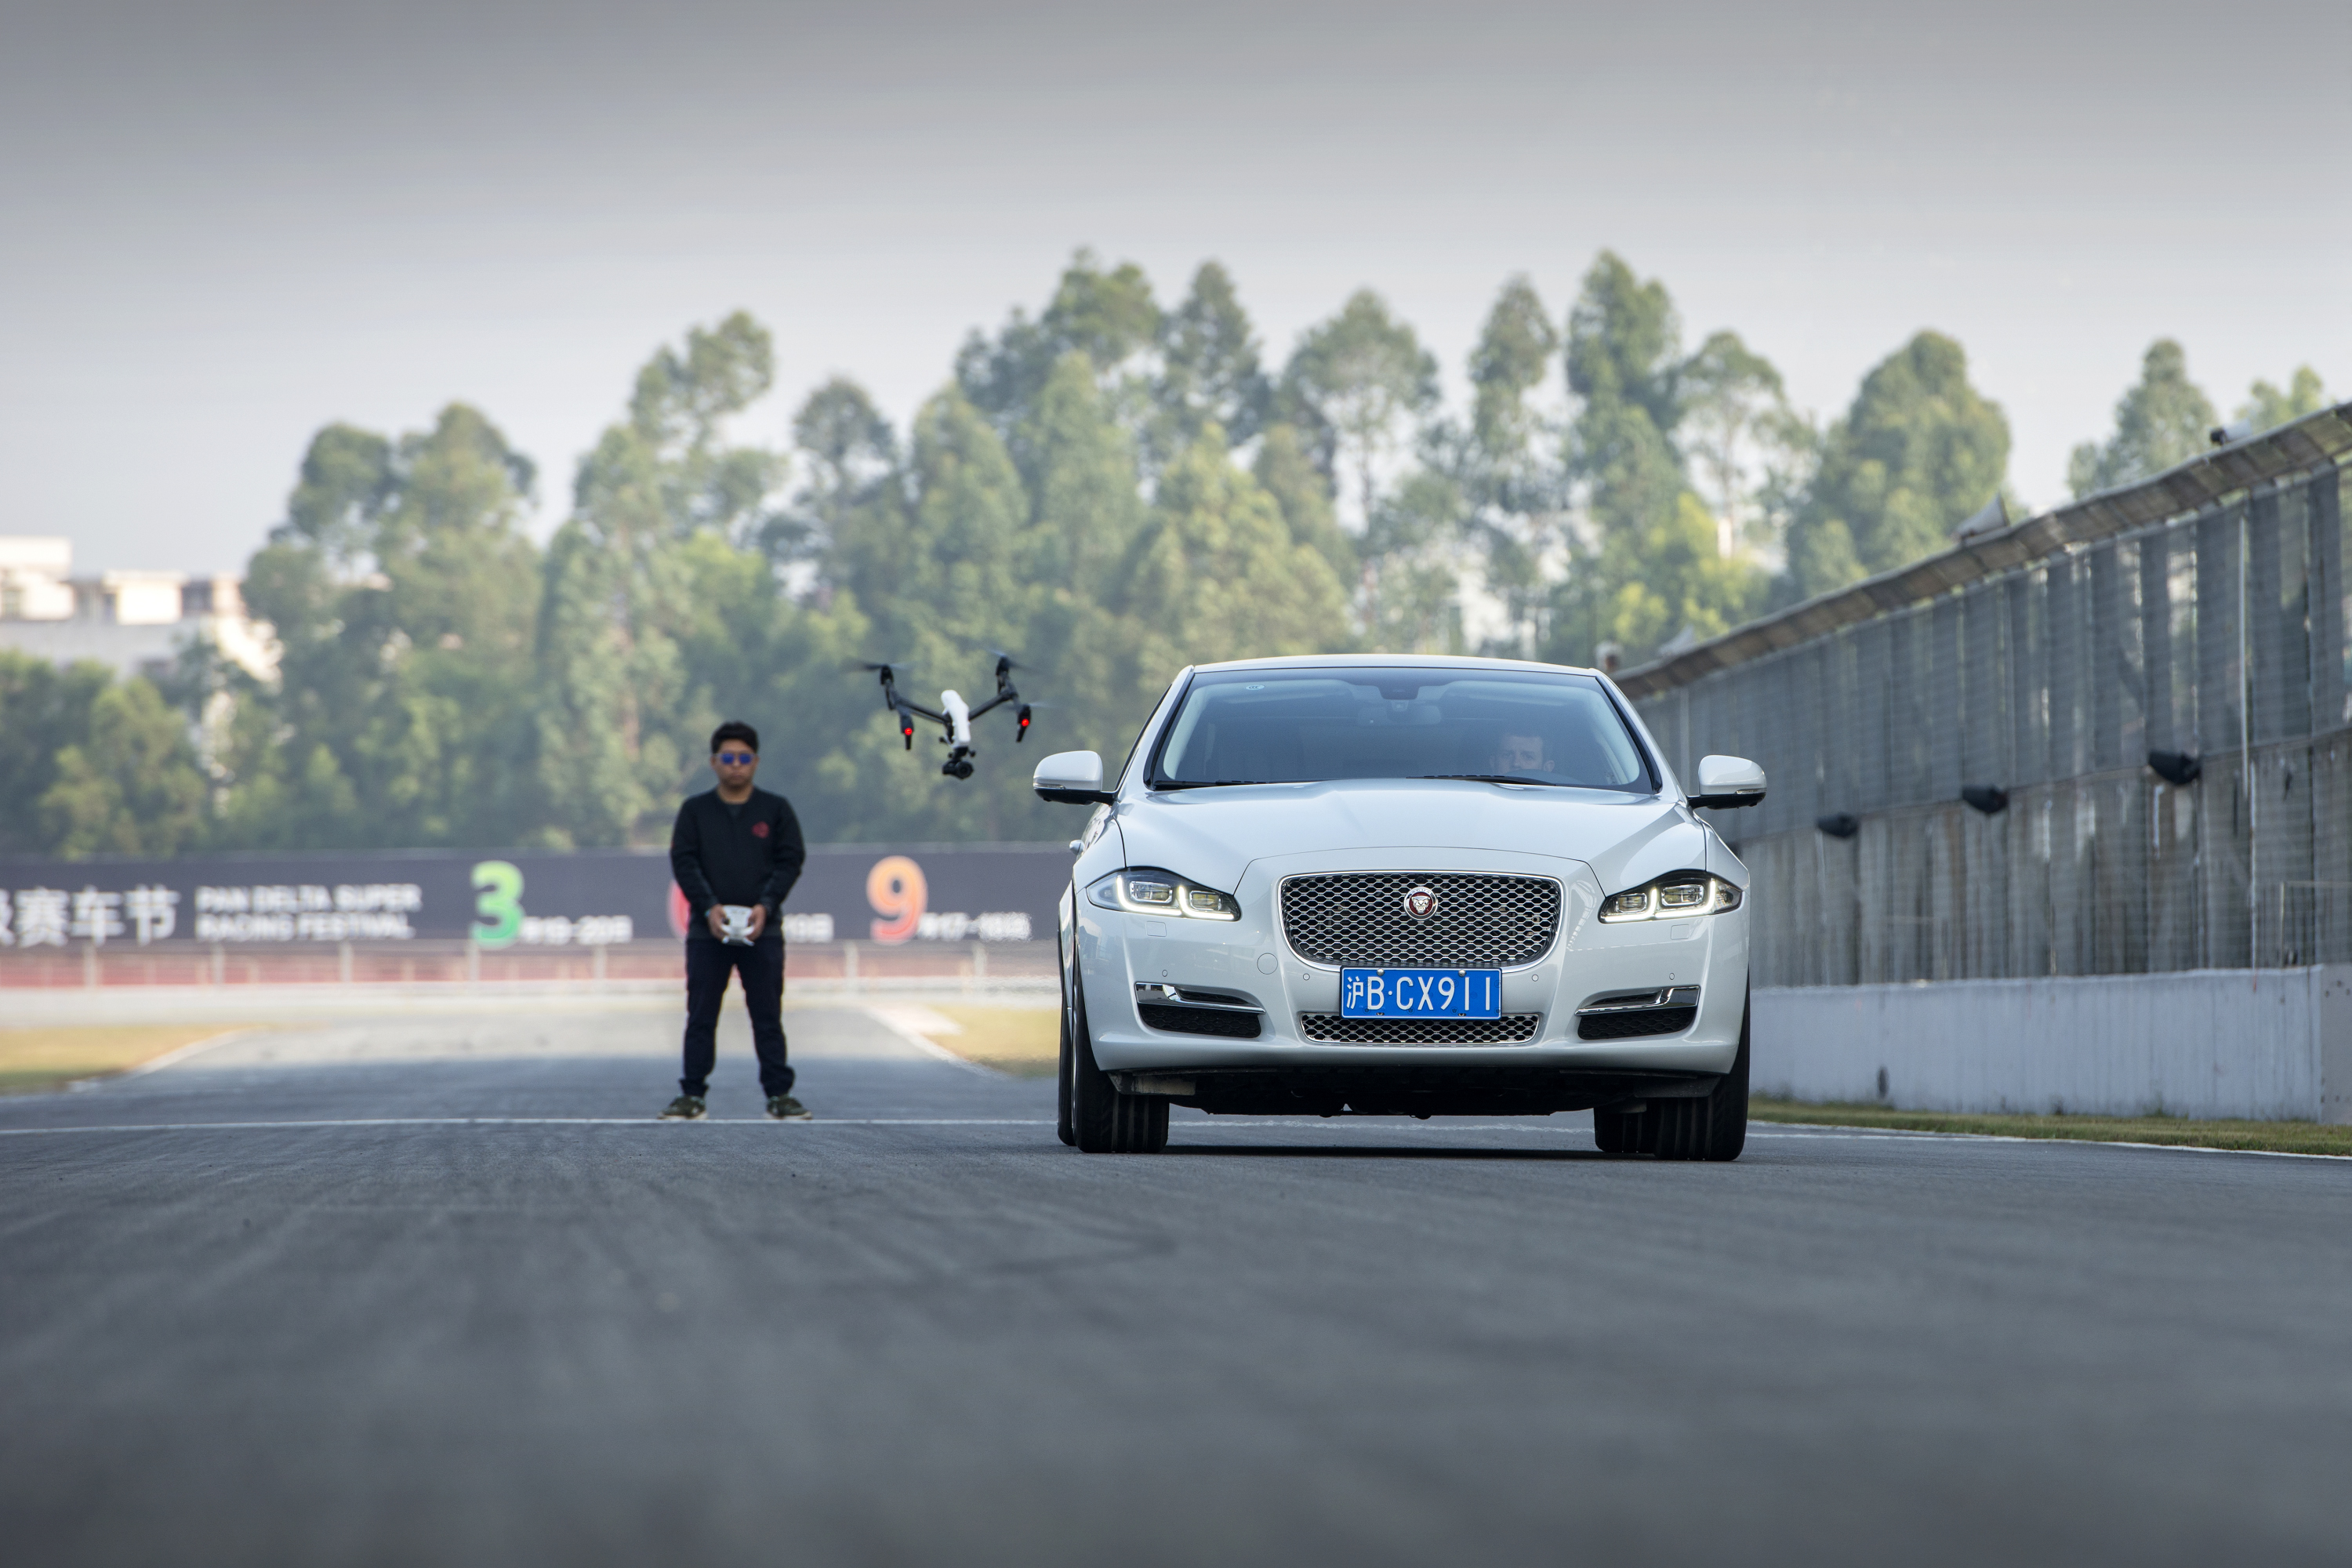 AJC3000-Photo-Credit-Anthony-Cullen Race Between Jaguar XJ and DJI Drone Demos UAS for Stunt Filming